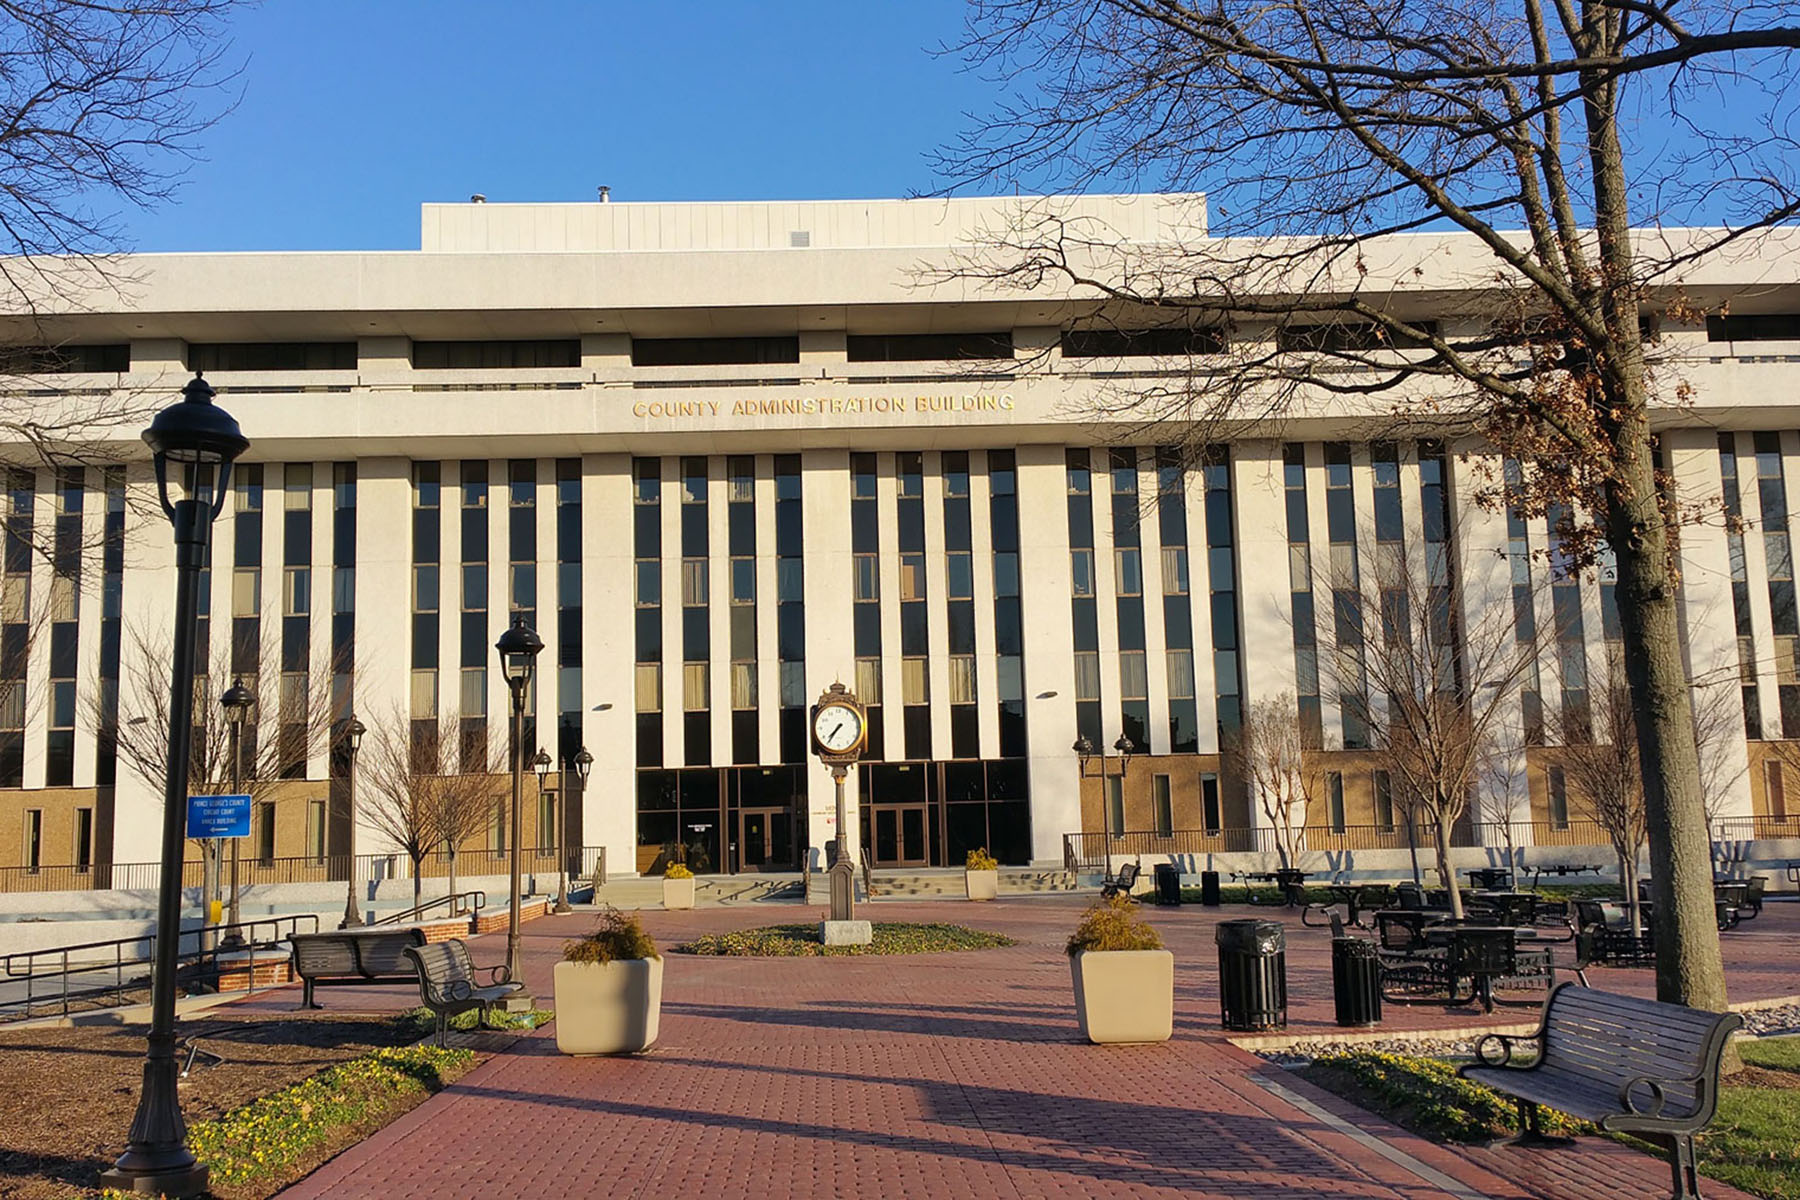 Prince Georges County Administration Building